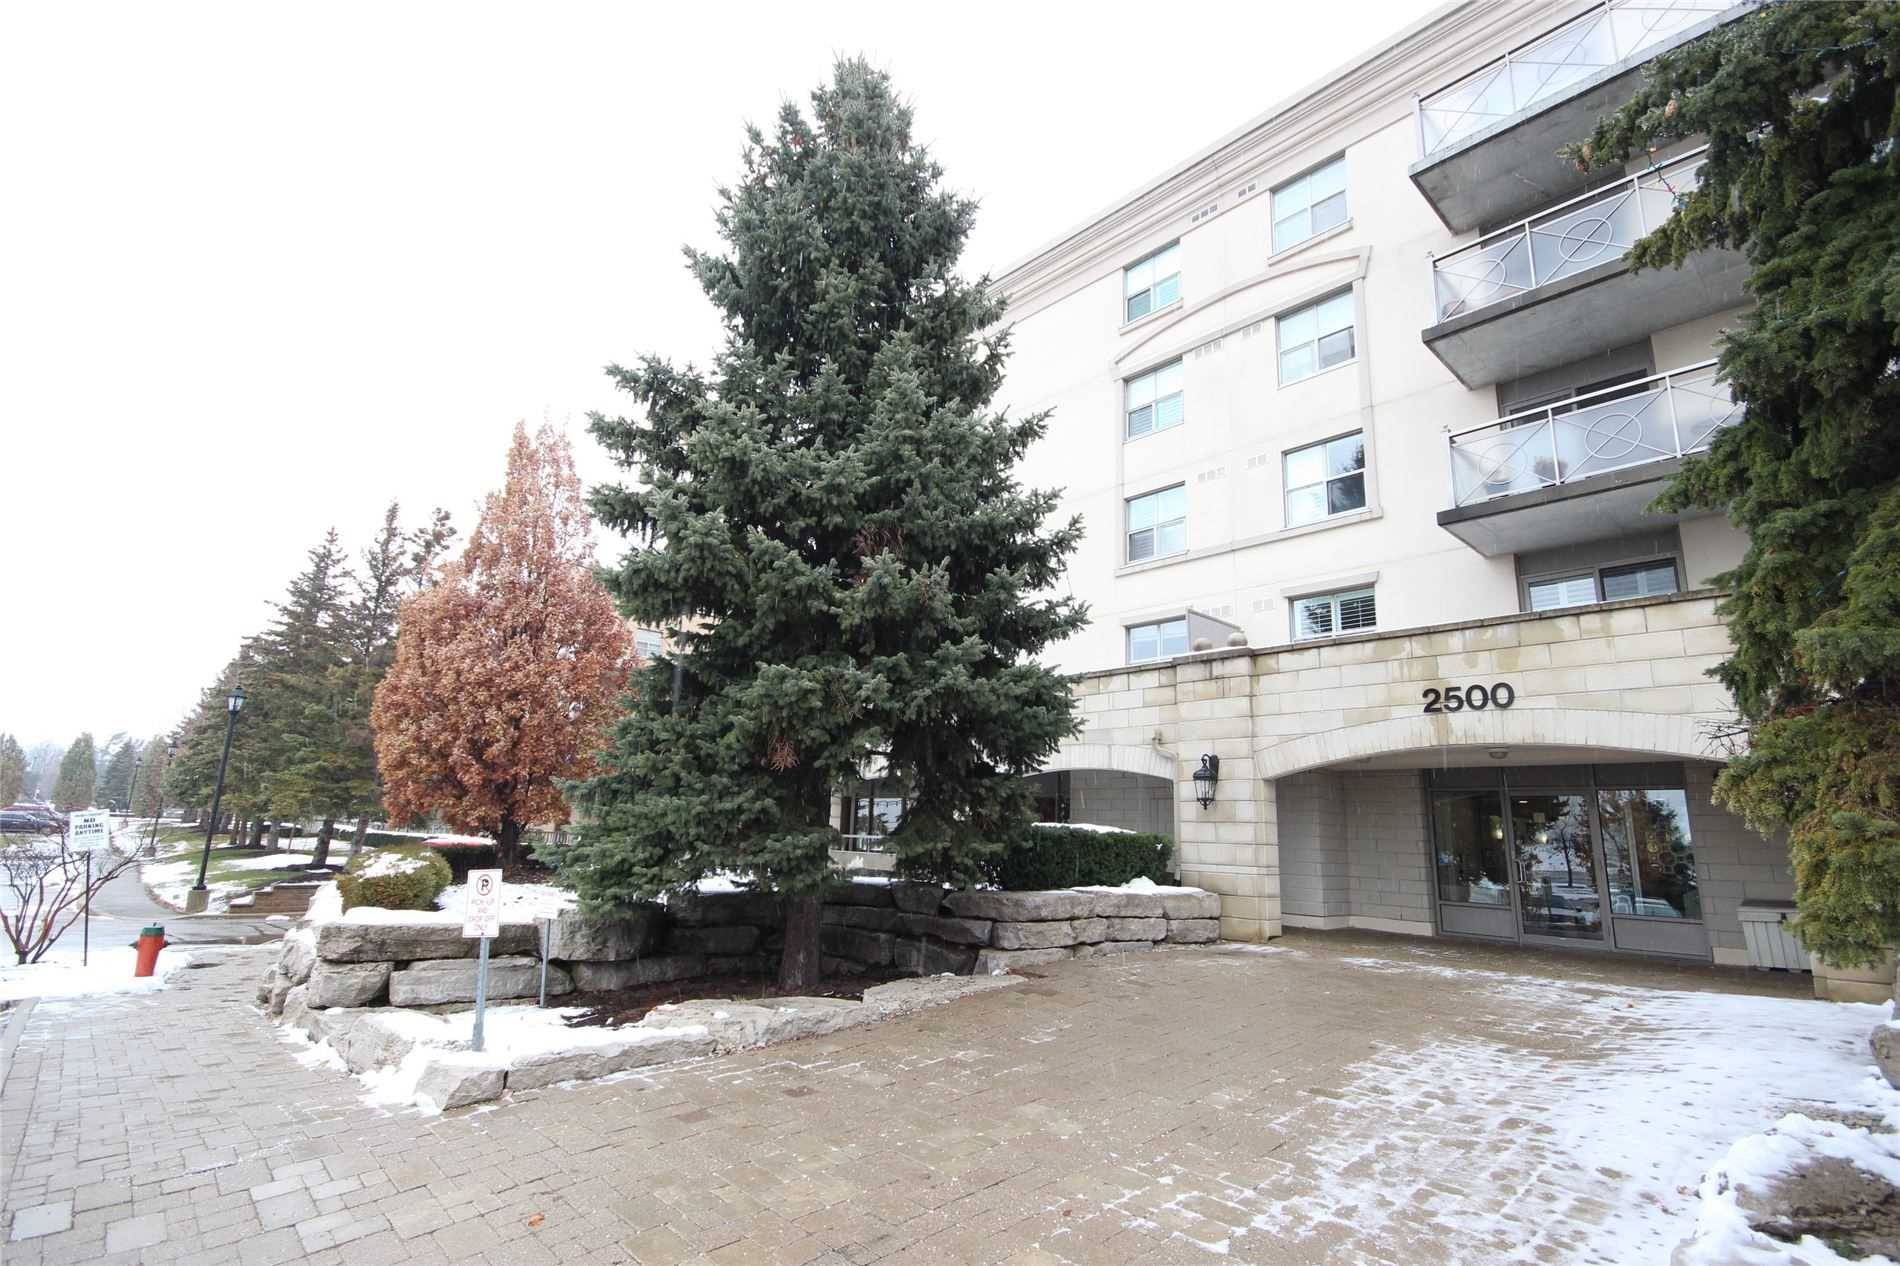 Buliding: 2500 Rutherford Road, Vaughan, ON